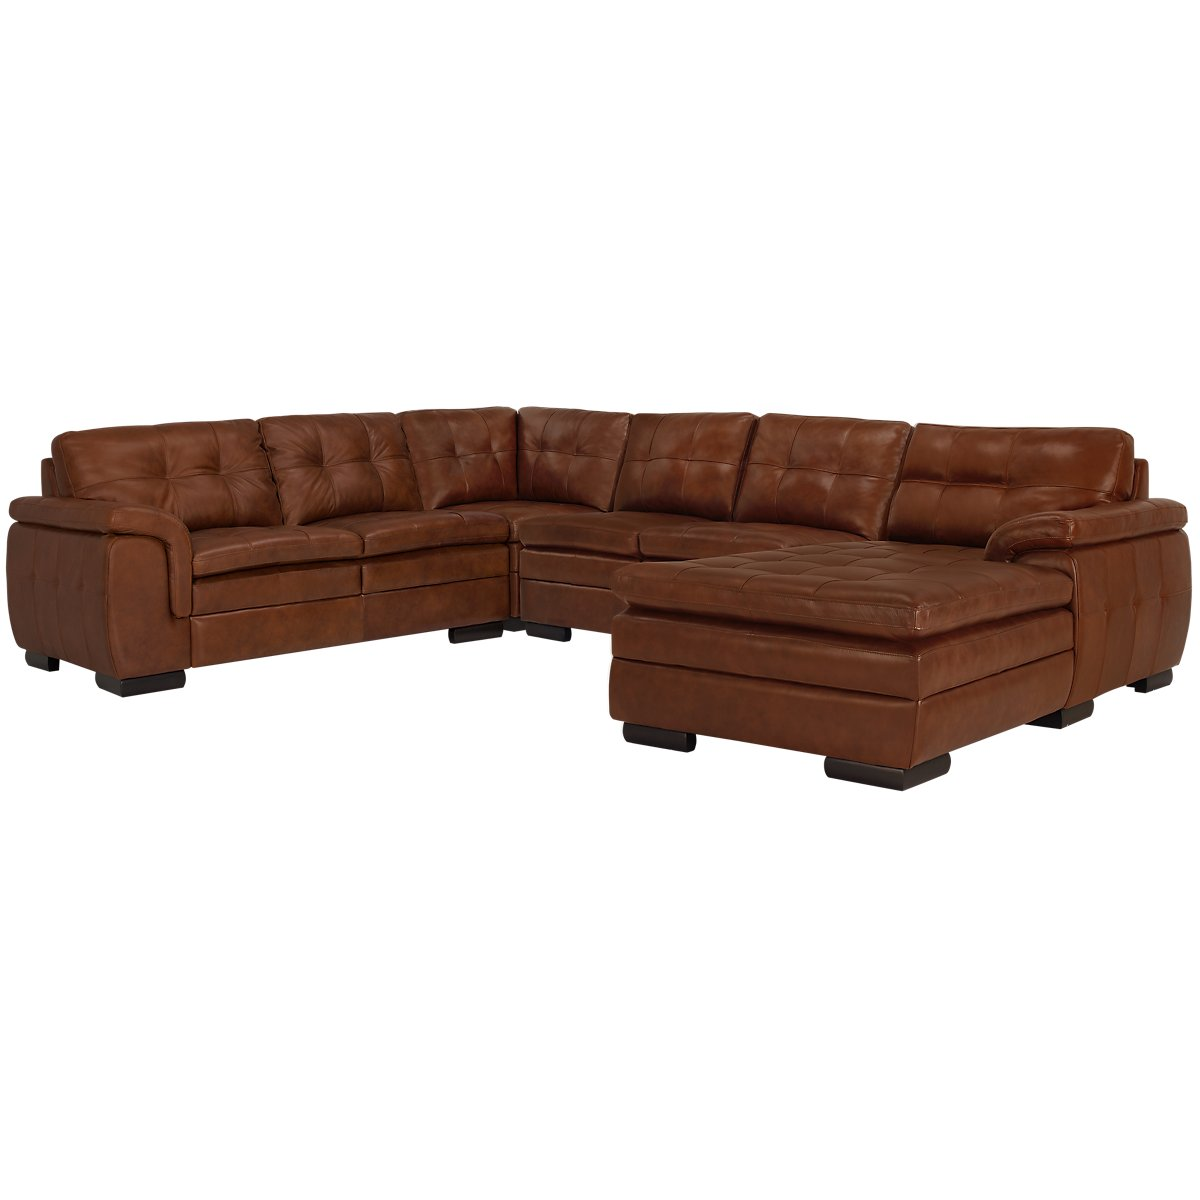 City Furniture Trevor Medium Brown Leather Small Right